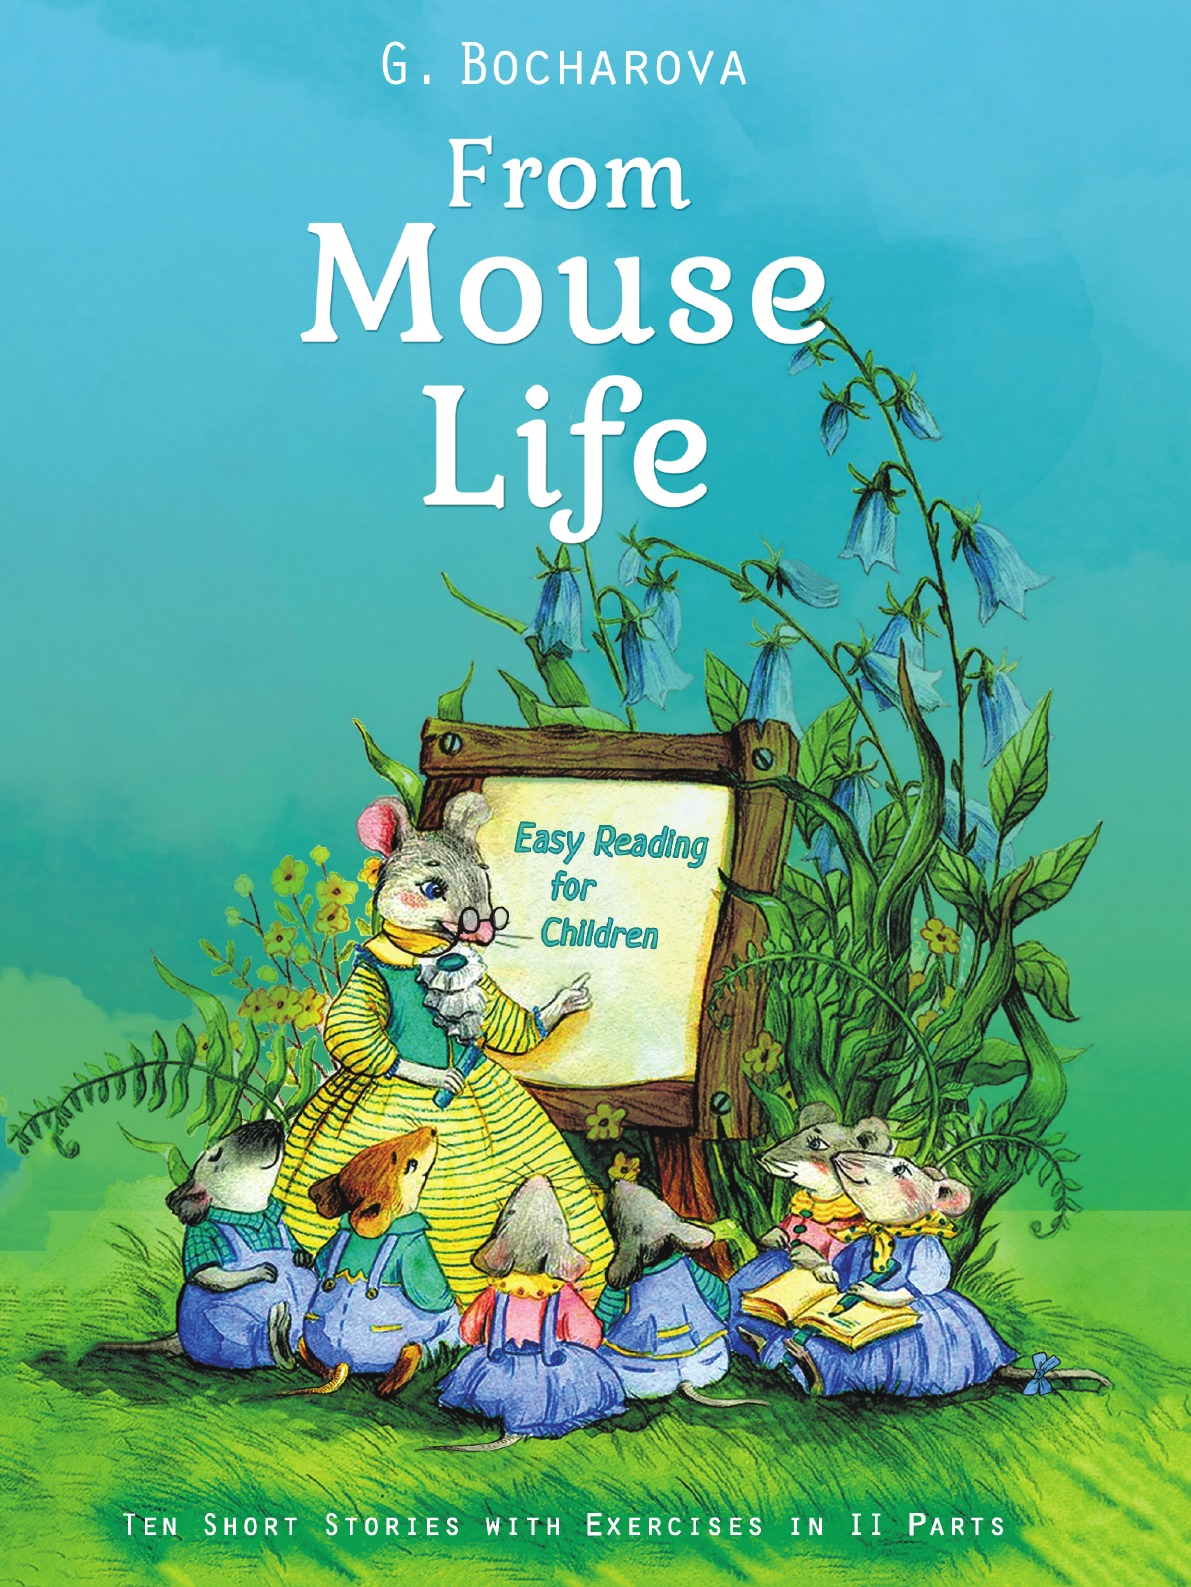 G. Bocharova From mouse life. Easy Reading for Children Ten Short Stories with Exercises in II Parts nasreddin ten stories level 5